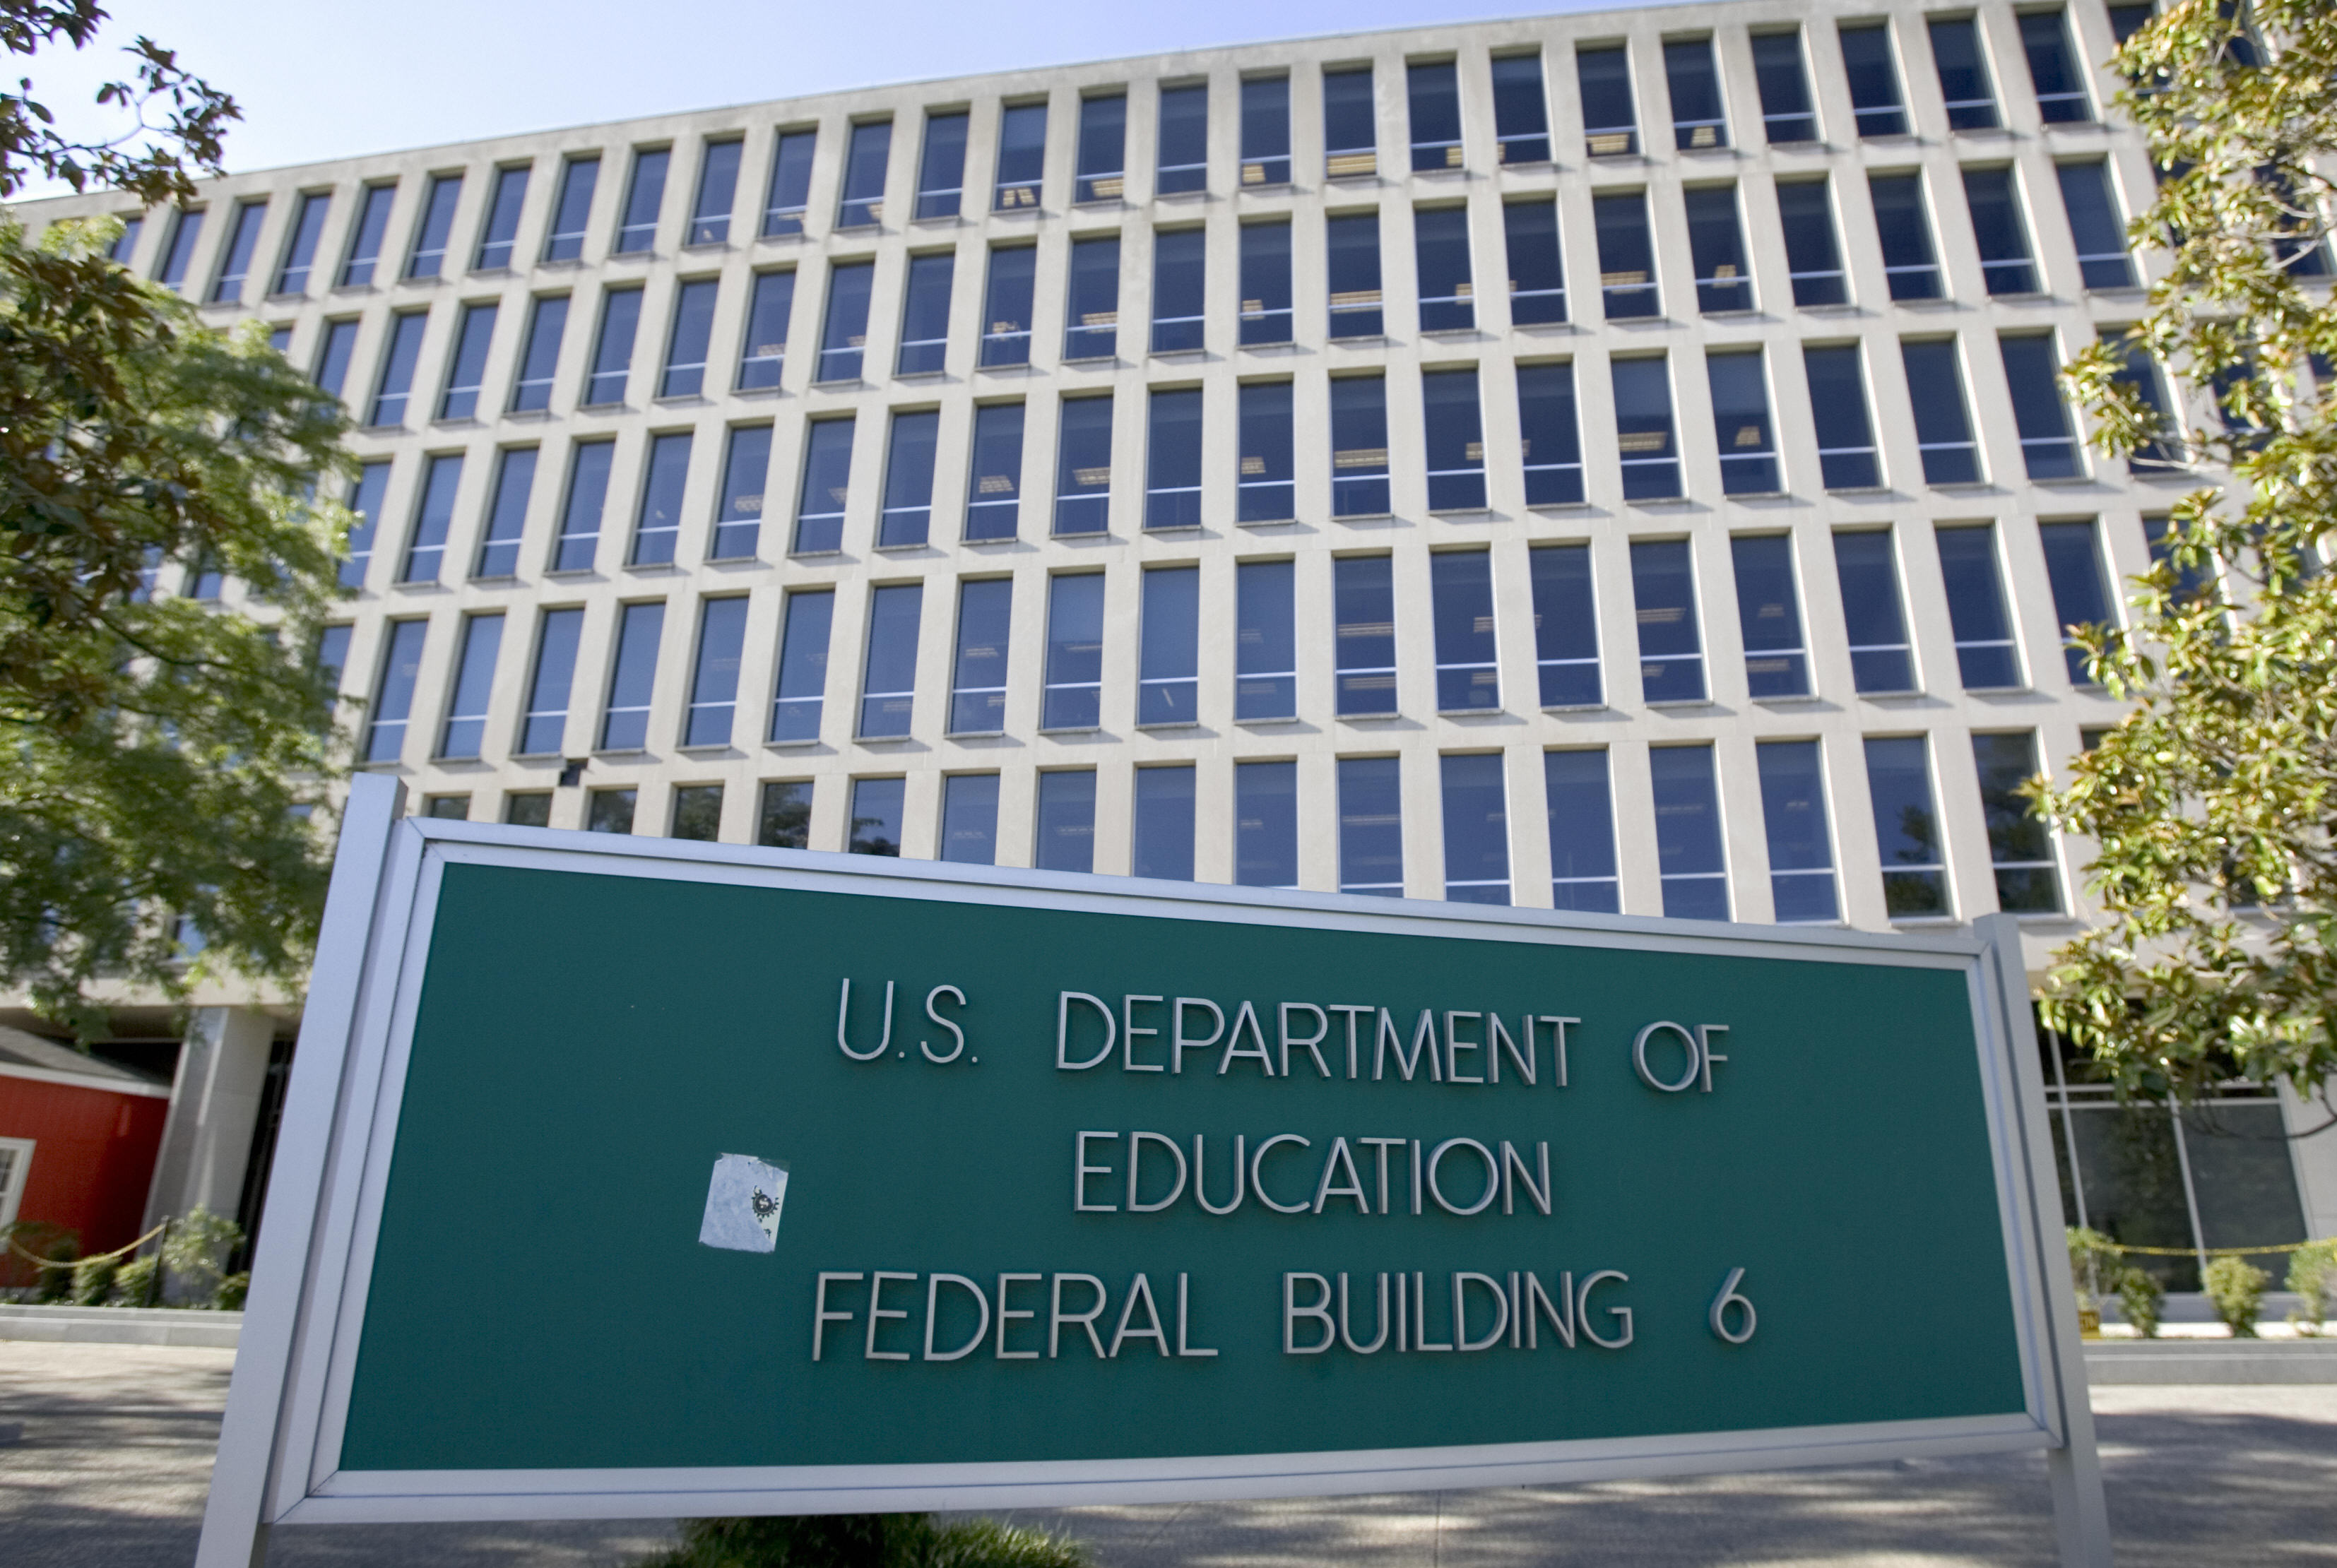 On Sept. 20, 2017, leaders of veteran and military service organizations sent the latest in a series of letters to the U.S. Department of Education stating opposition to any efforts to water down, delay or eliminate regulations that protect students from predatory institutional practices targeting military students. (Photo credit: Saul Loeb/AFP/Getty Images)